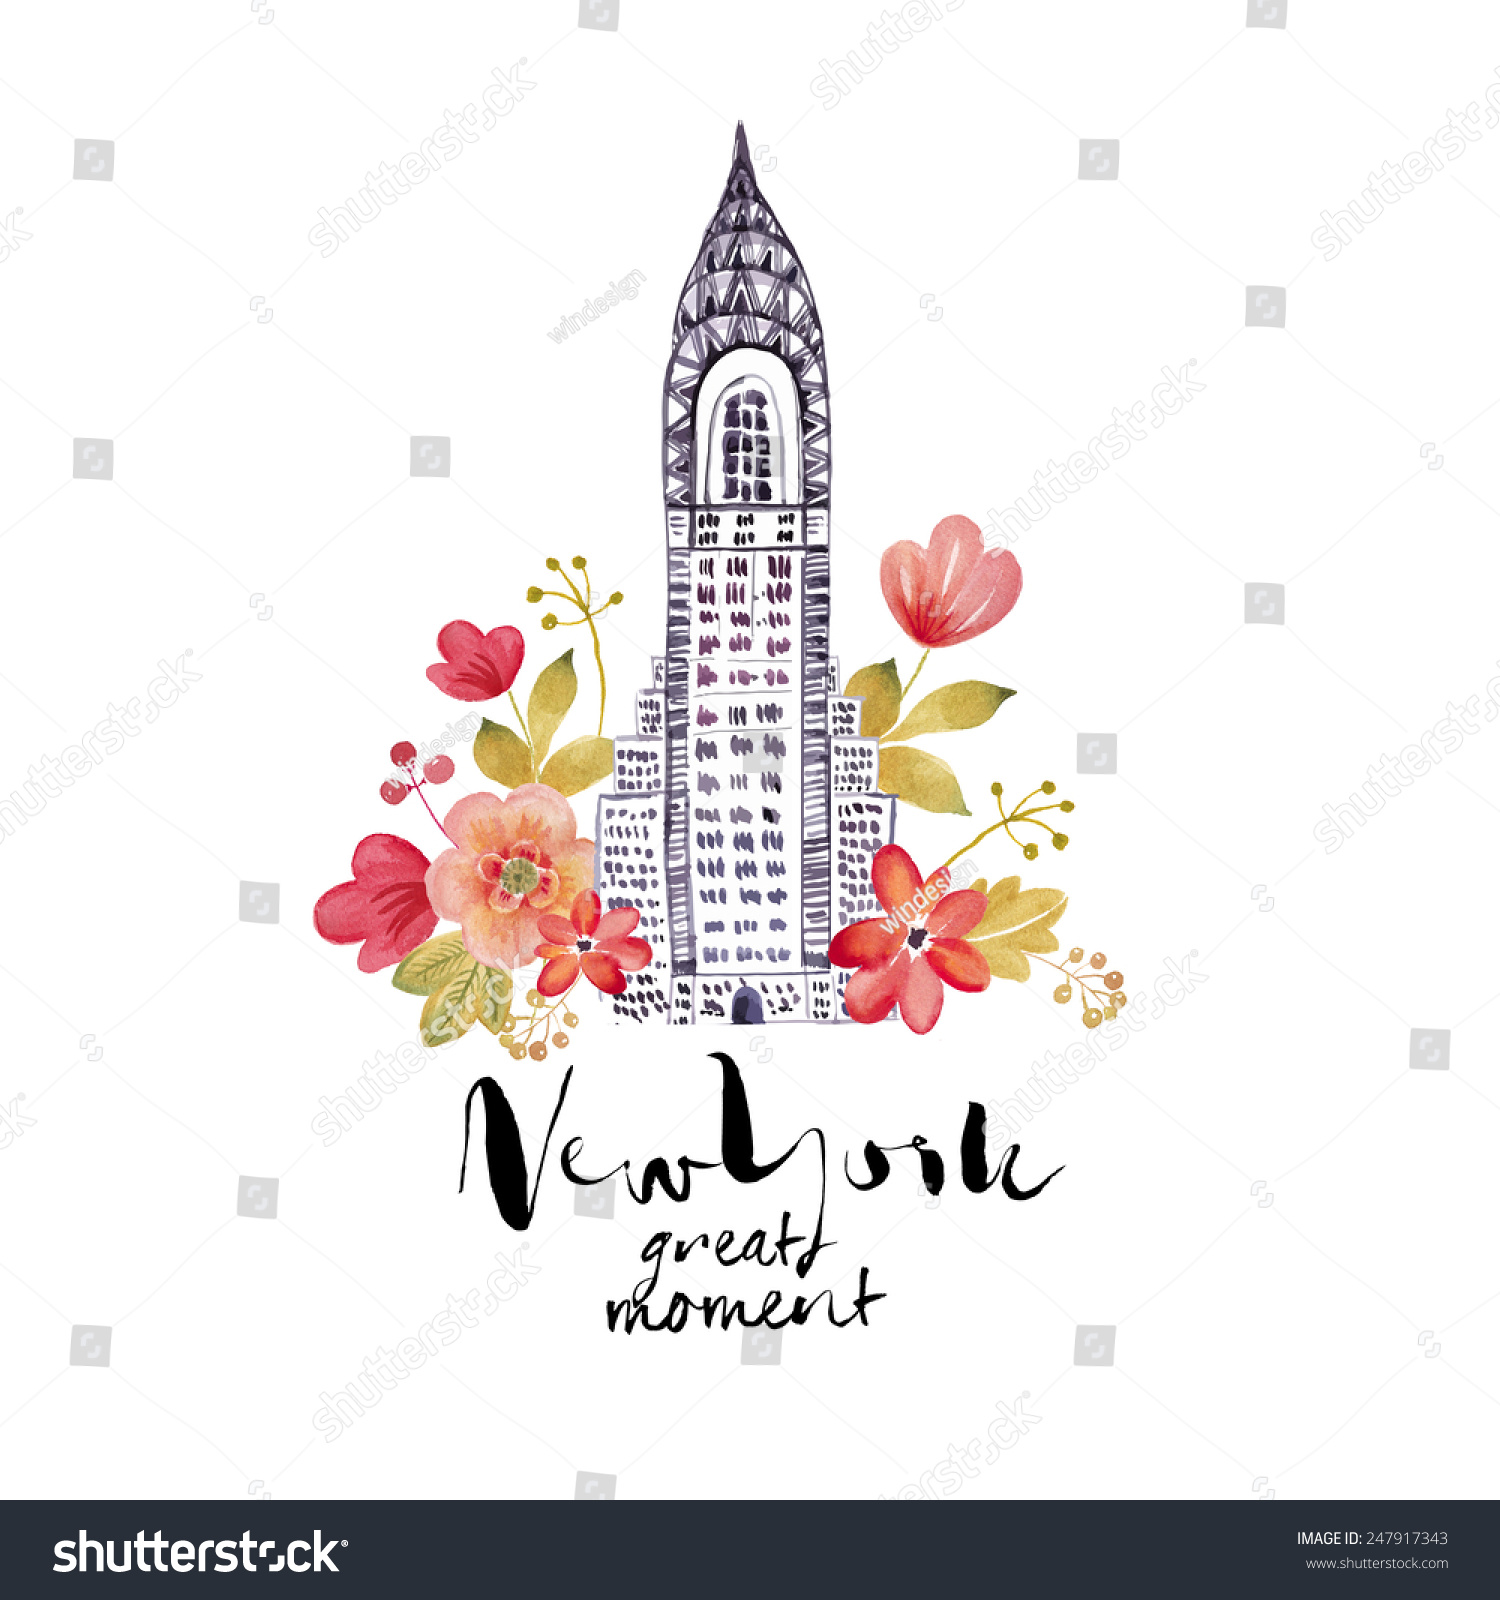 Watercolor New York: New York City Watercolor Illustration Nyc Stock